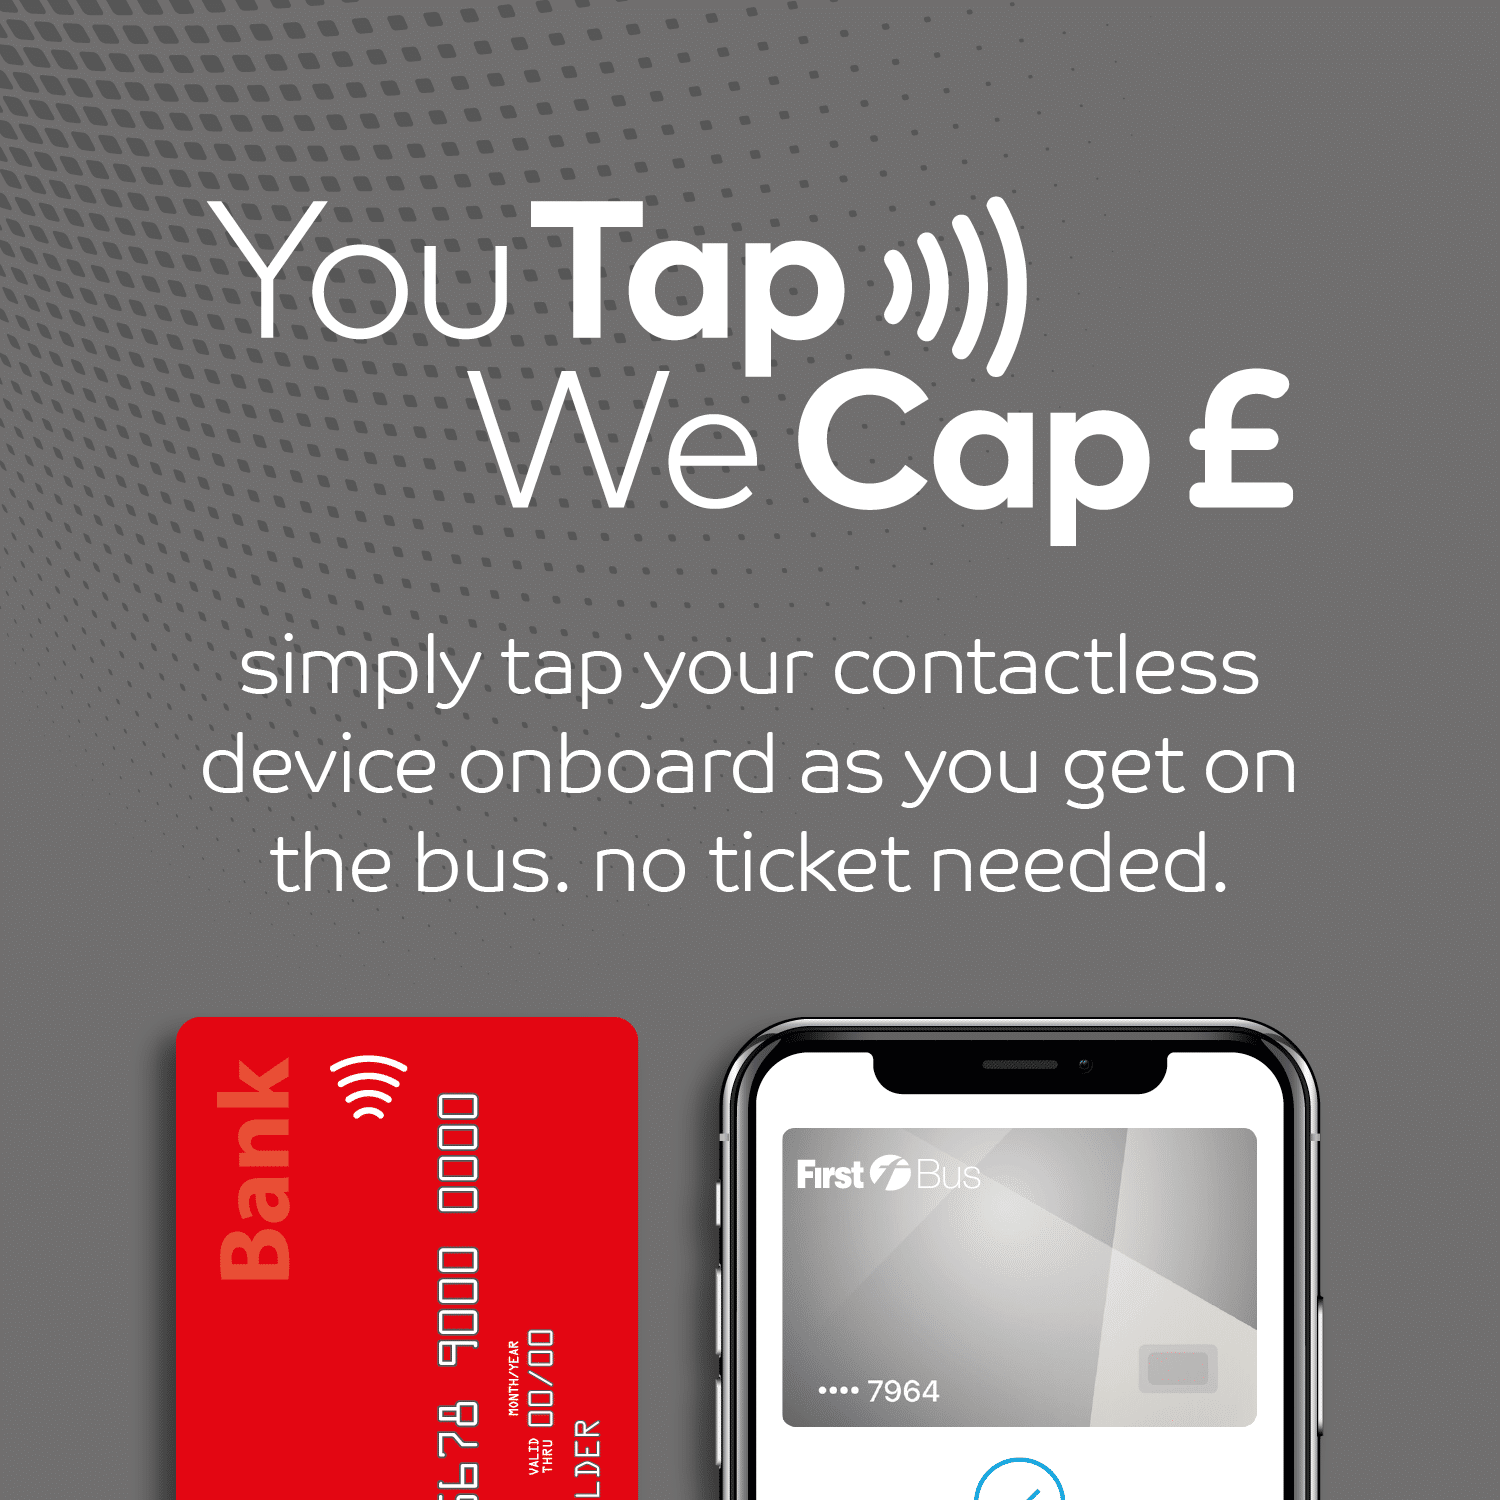 You Tap We Cap. simply tap your contactless device onboard as you get on the bus. no ticket needed.